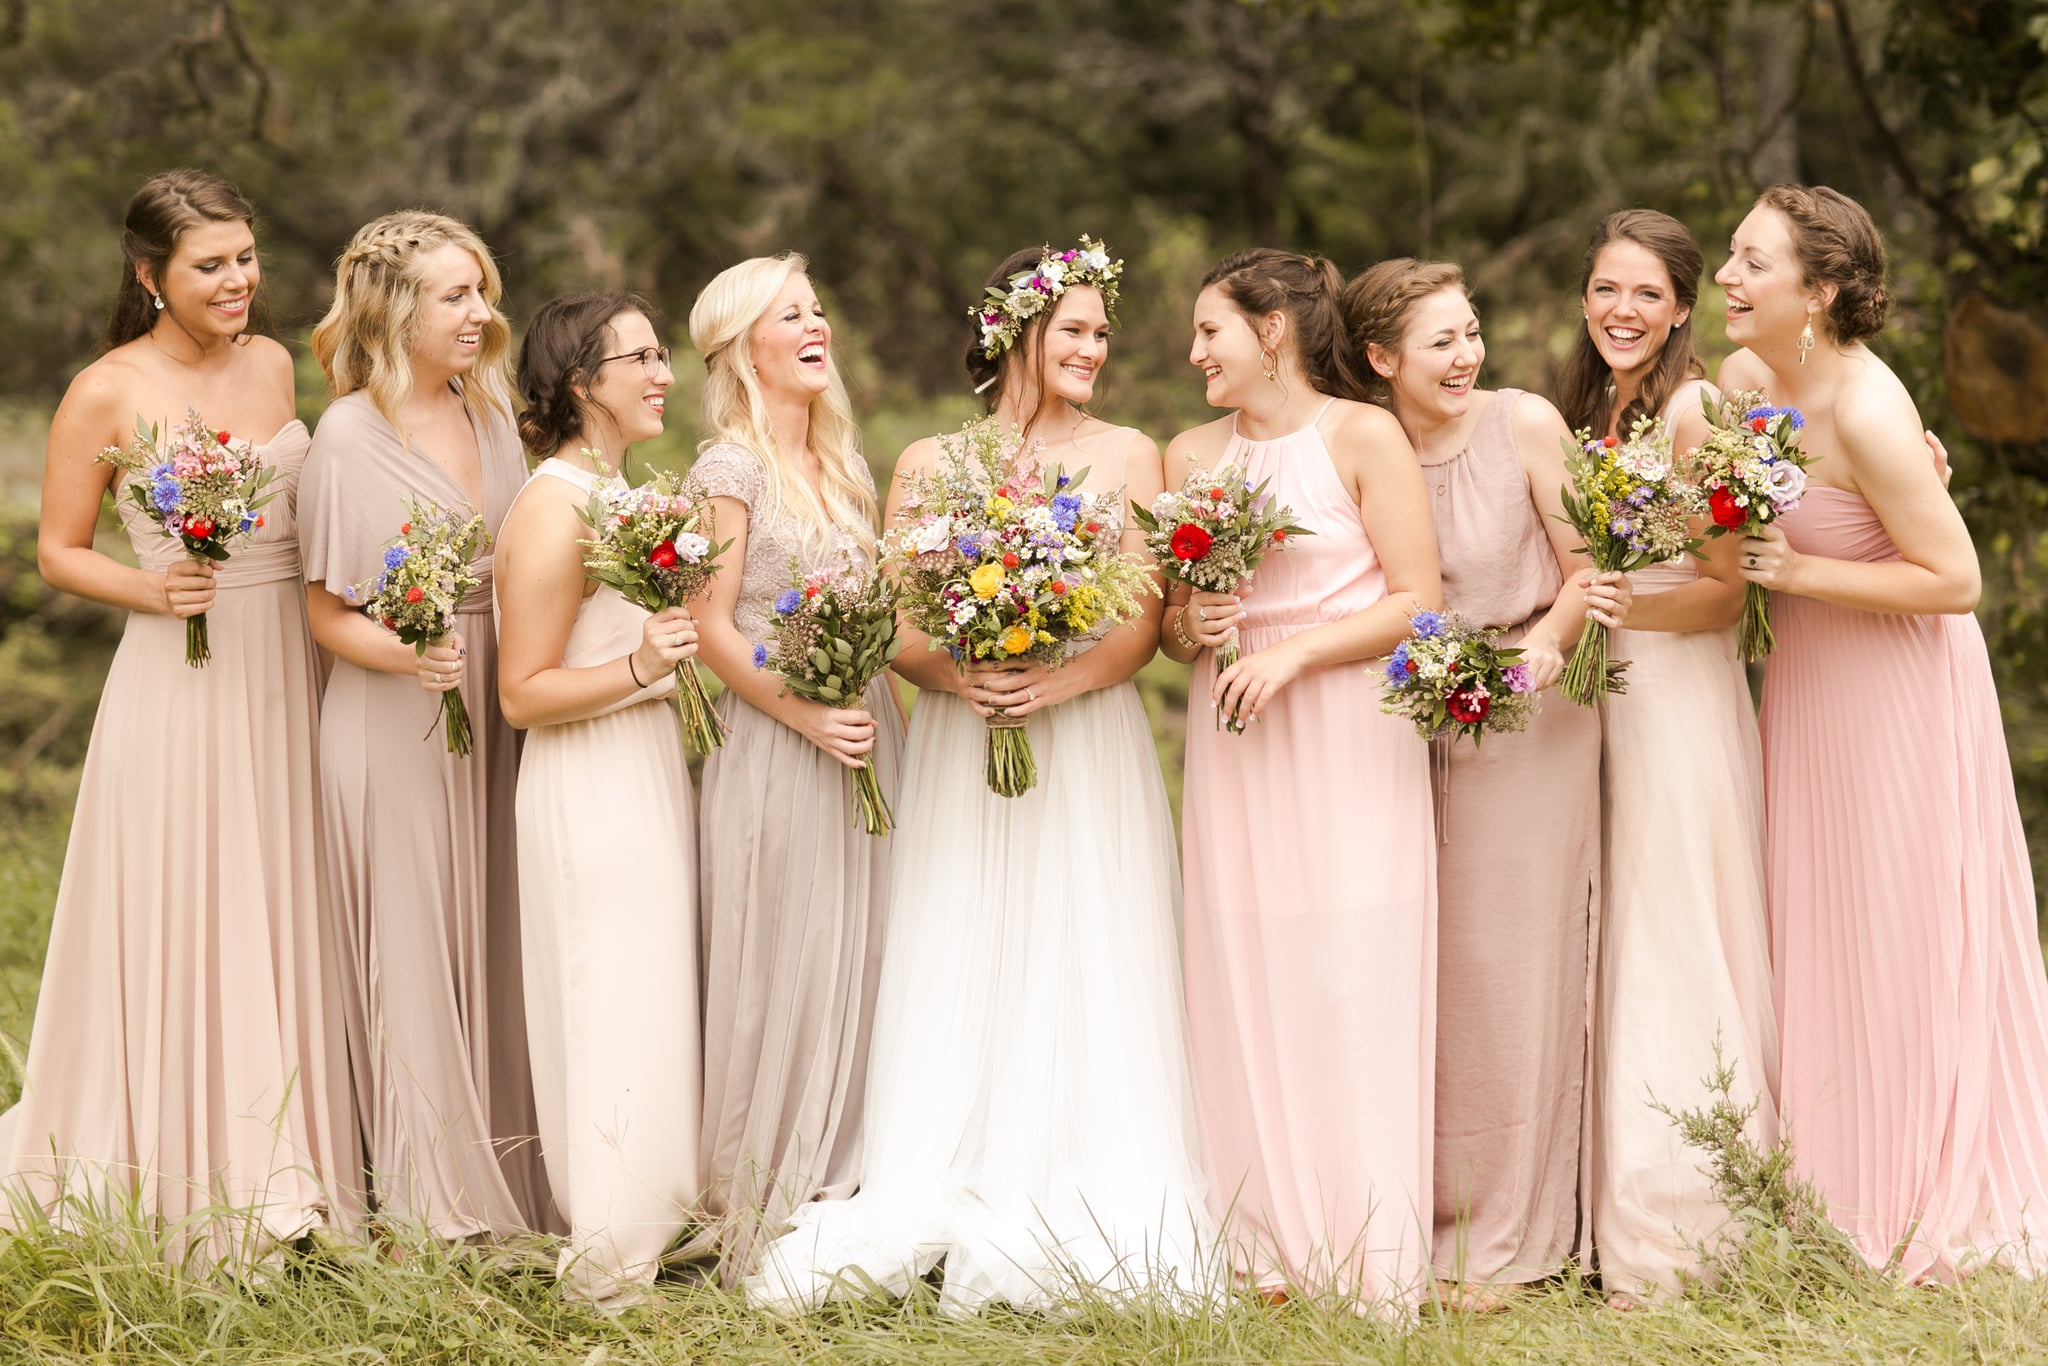 PopsugarLoveBridal Friday Link TimeLove and Sex News For June 24, 2016How to Choose Your Bridesmaids Without Breaking Hearts June 24, 2016 by Karenna Meredith3 Shares Pick your bridesmaids without pissing everyone off — Style Me Pretty 7 things guests will want to find in their welcome bags — GlamourCreate a wedding ceremony aisle that's totally unique — BridesYou're going to cry when you see this Colorado elopement — Wedding ChicksCheck out this bohemian engagement with a patriotic twist — Green Wedding ShoesHow much movie weddings would cost in real life — HuffPost WeddingsThis wedding is a bride's blush and coral dream — Equally Wed36 brilliant ideas for the ultimate kid-friendly wedding — POPSUGAR MomsImage Source: Chandra's Collection PhotographyBridal Friday Link TimeAround The WebFrom Our PartnersNow You Know Entertainment News June Delivers a Wake-Up Call in the Unsettling New Handmaid's Tale Season 3 - 웹